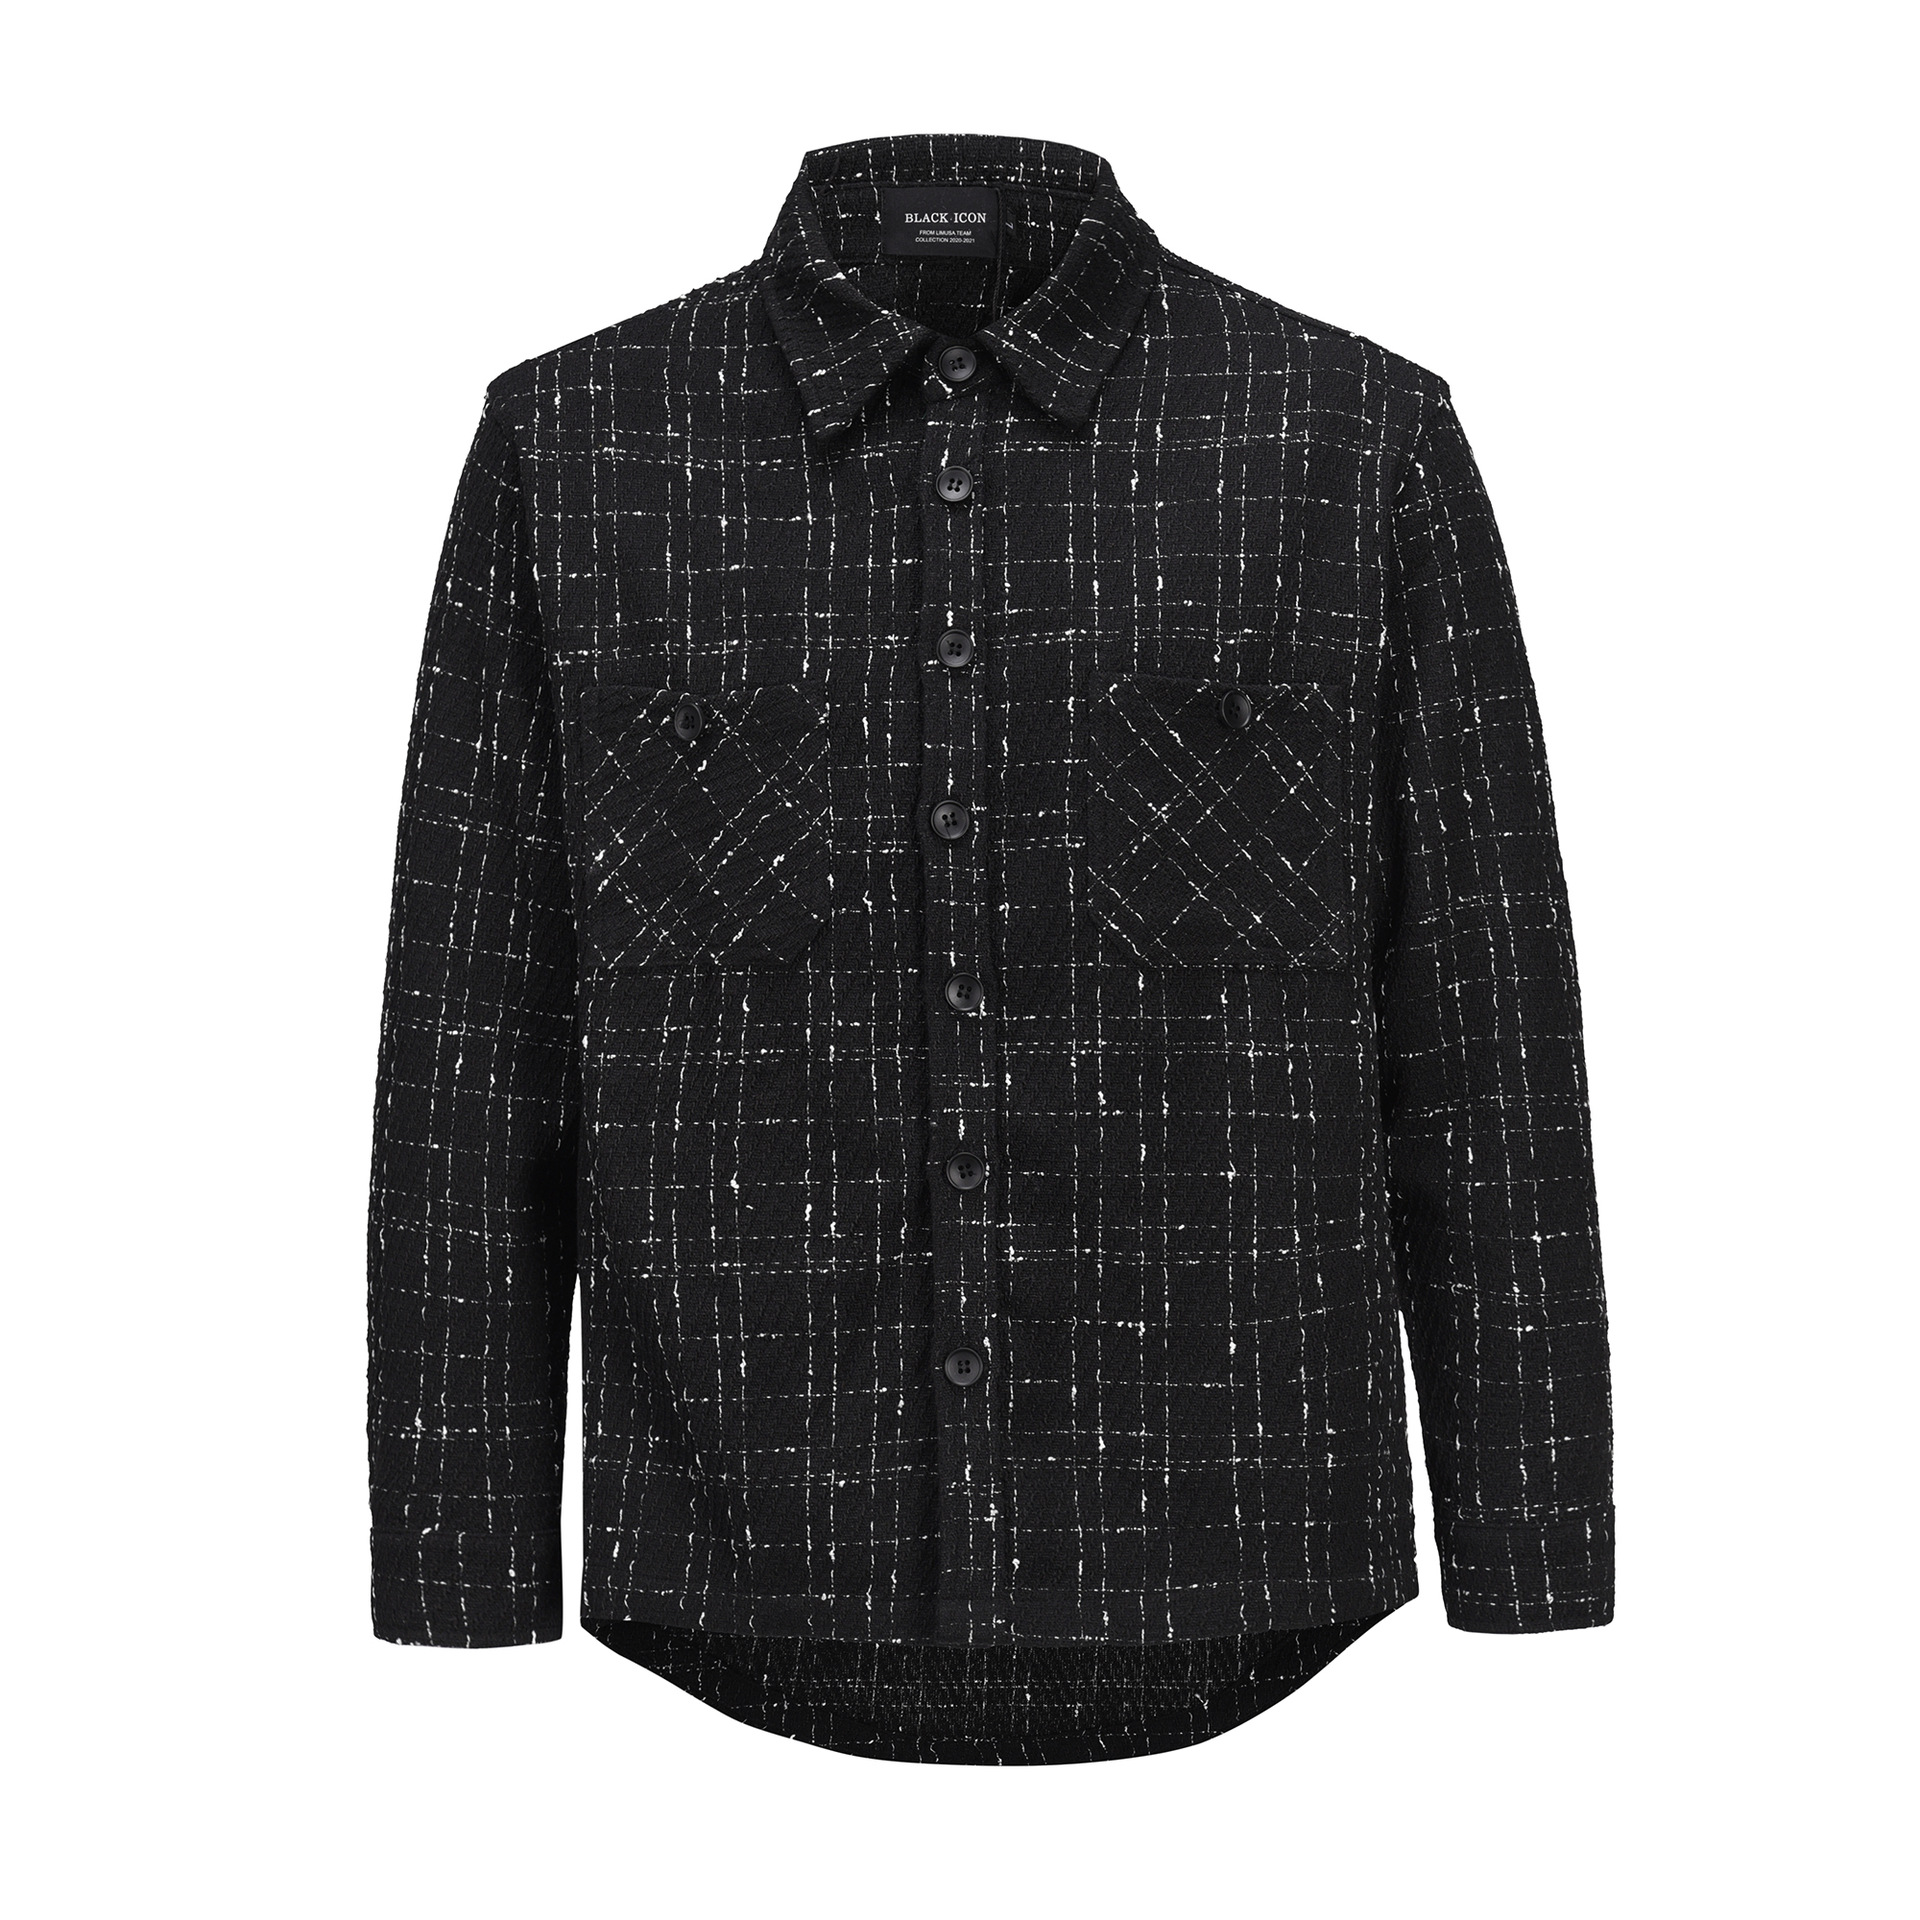 Rustic Check Shirt Jacket for Autumn and Winter Fashion